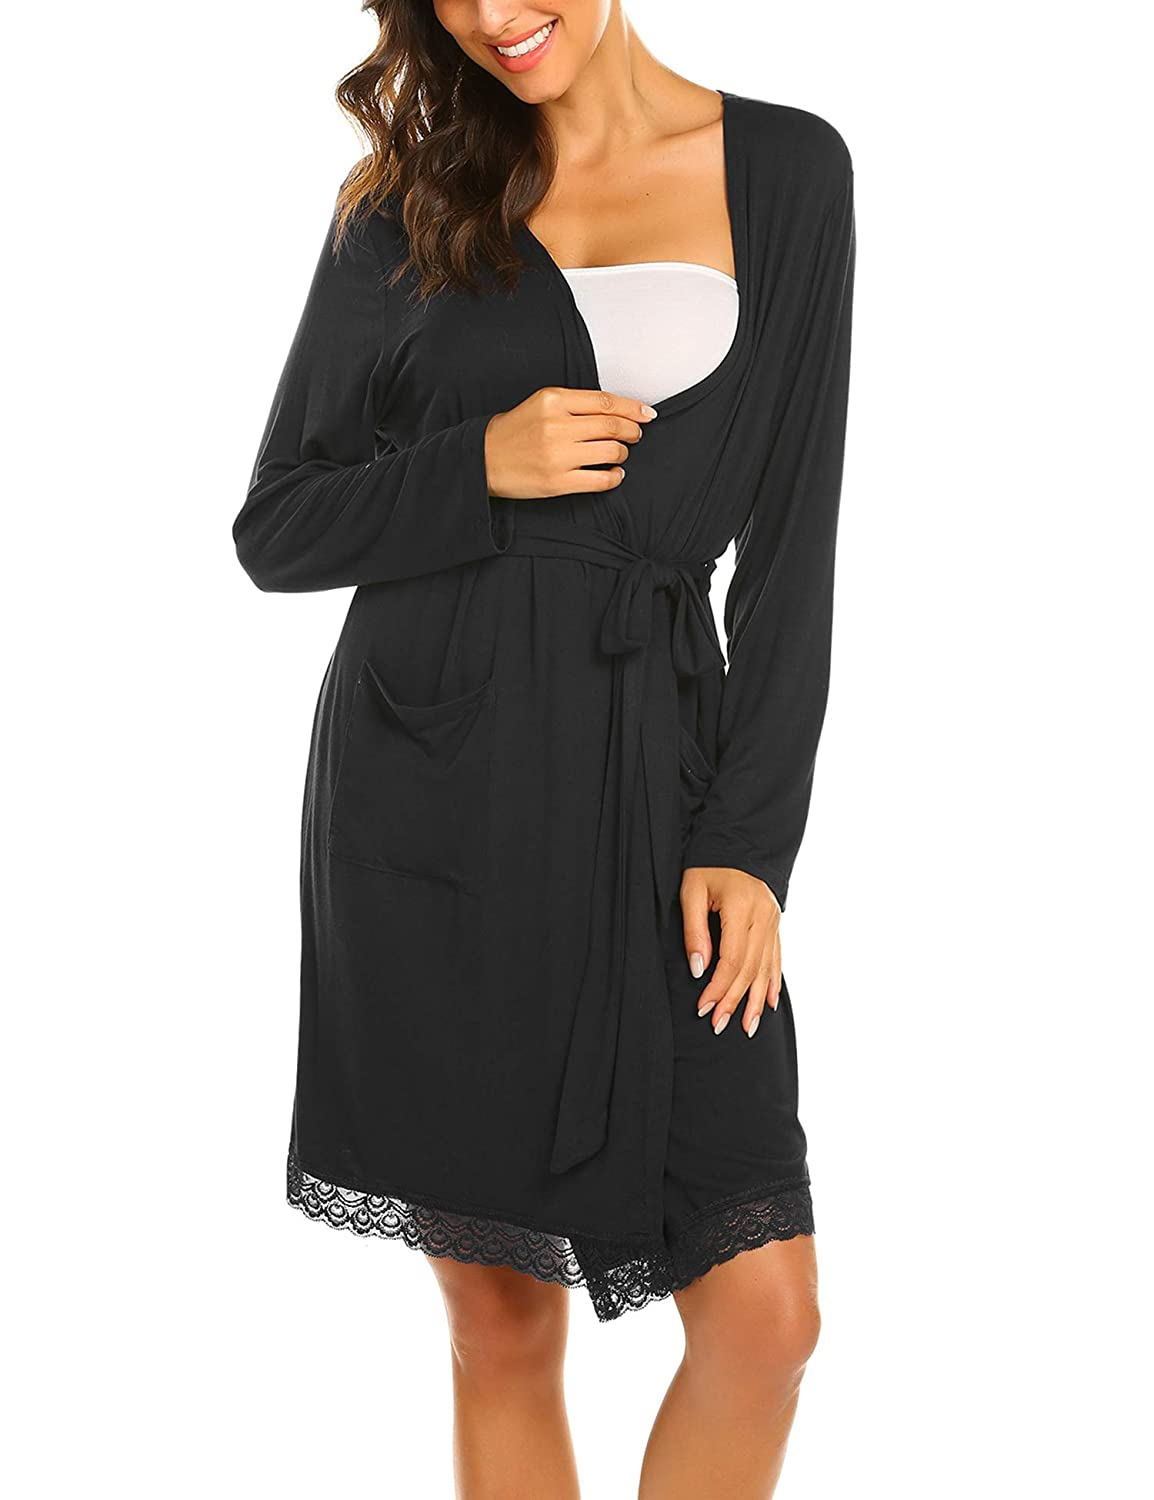 MAXMODA Womens Robe Maternity Sleepwear Pregnancy Nightgown Nursing Soft Kimono Bathrobes